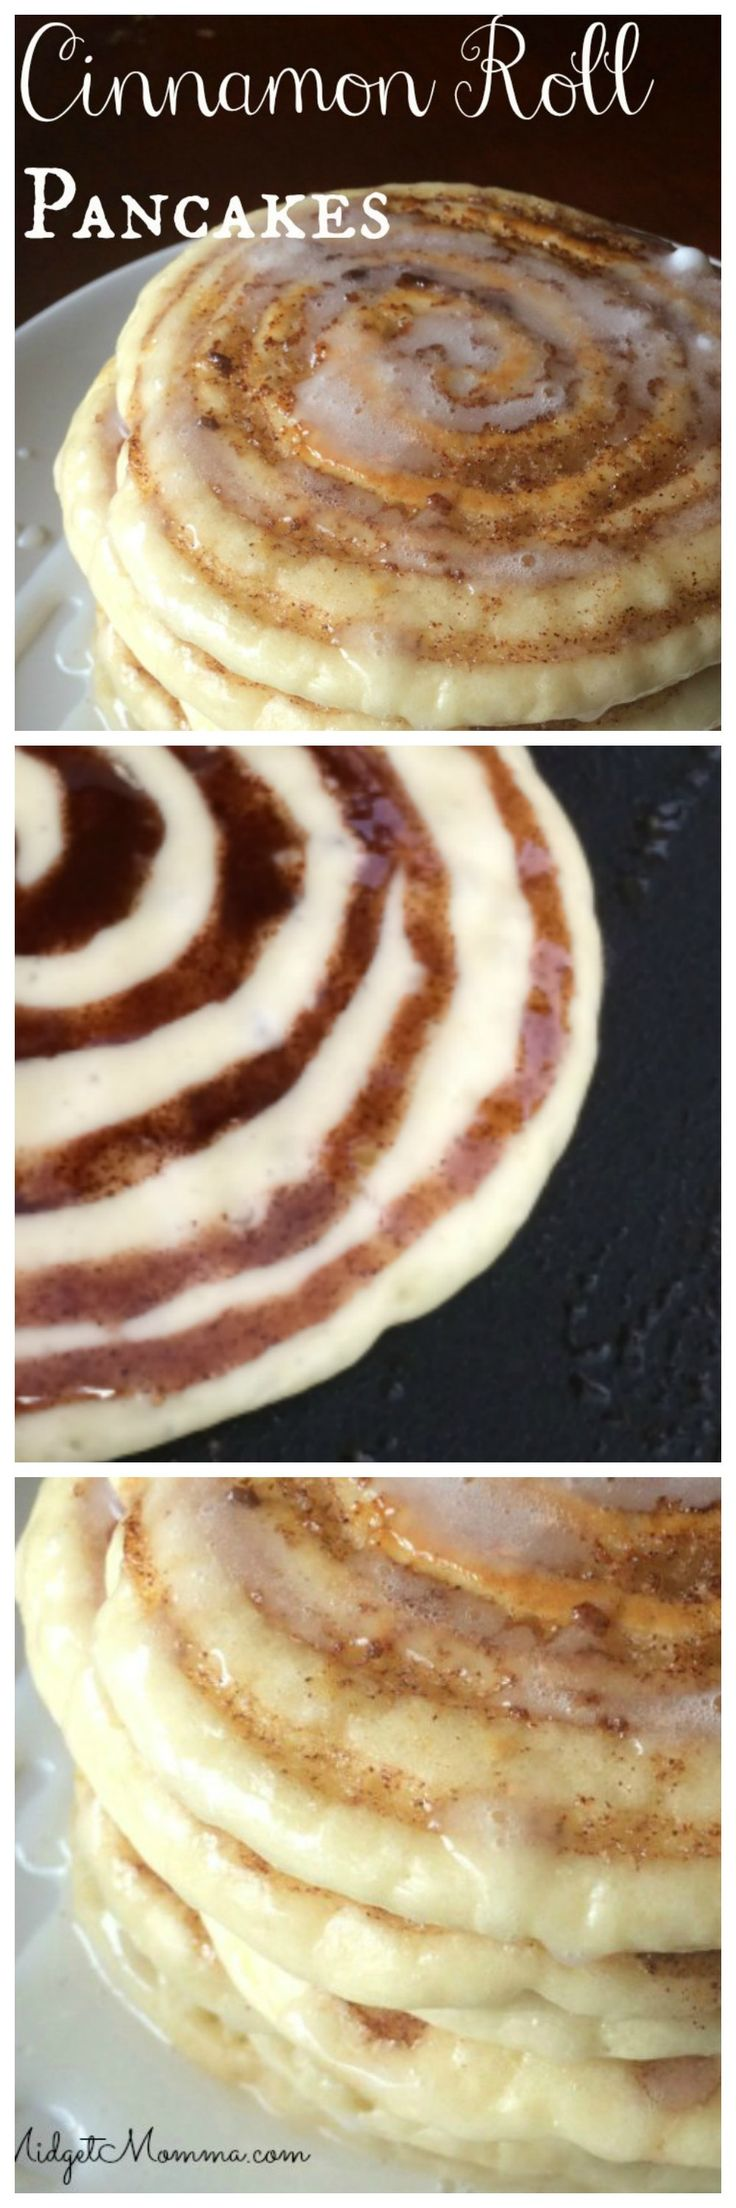 Cinnamon Roll Pancakes. Skip the box pancake mix cause theses cinnamon roll pancakes will blow them away! No boxed mix is needed they are made from scratch, quick to make homemade pancakes that your family will love. Plus you can make extras and then put them in the freezer, they just as good then as they are when they are freshly made. These cinnamon roll pancakes with cream cheese glaze are the perfect addition to your breakfast! xx